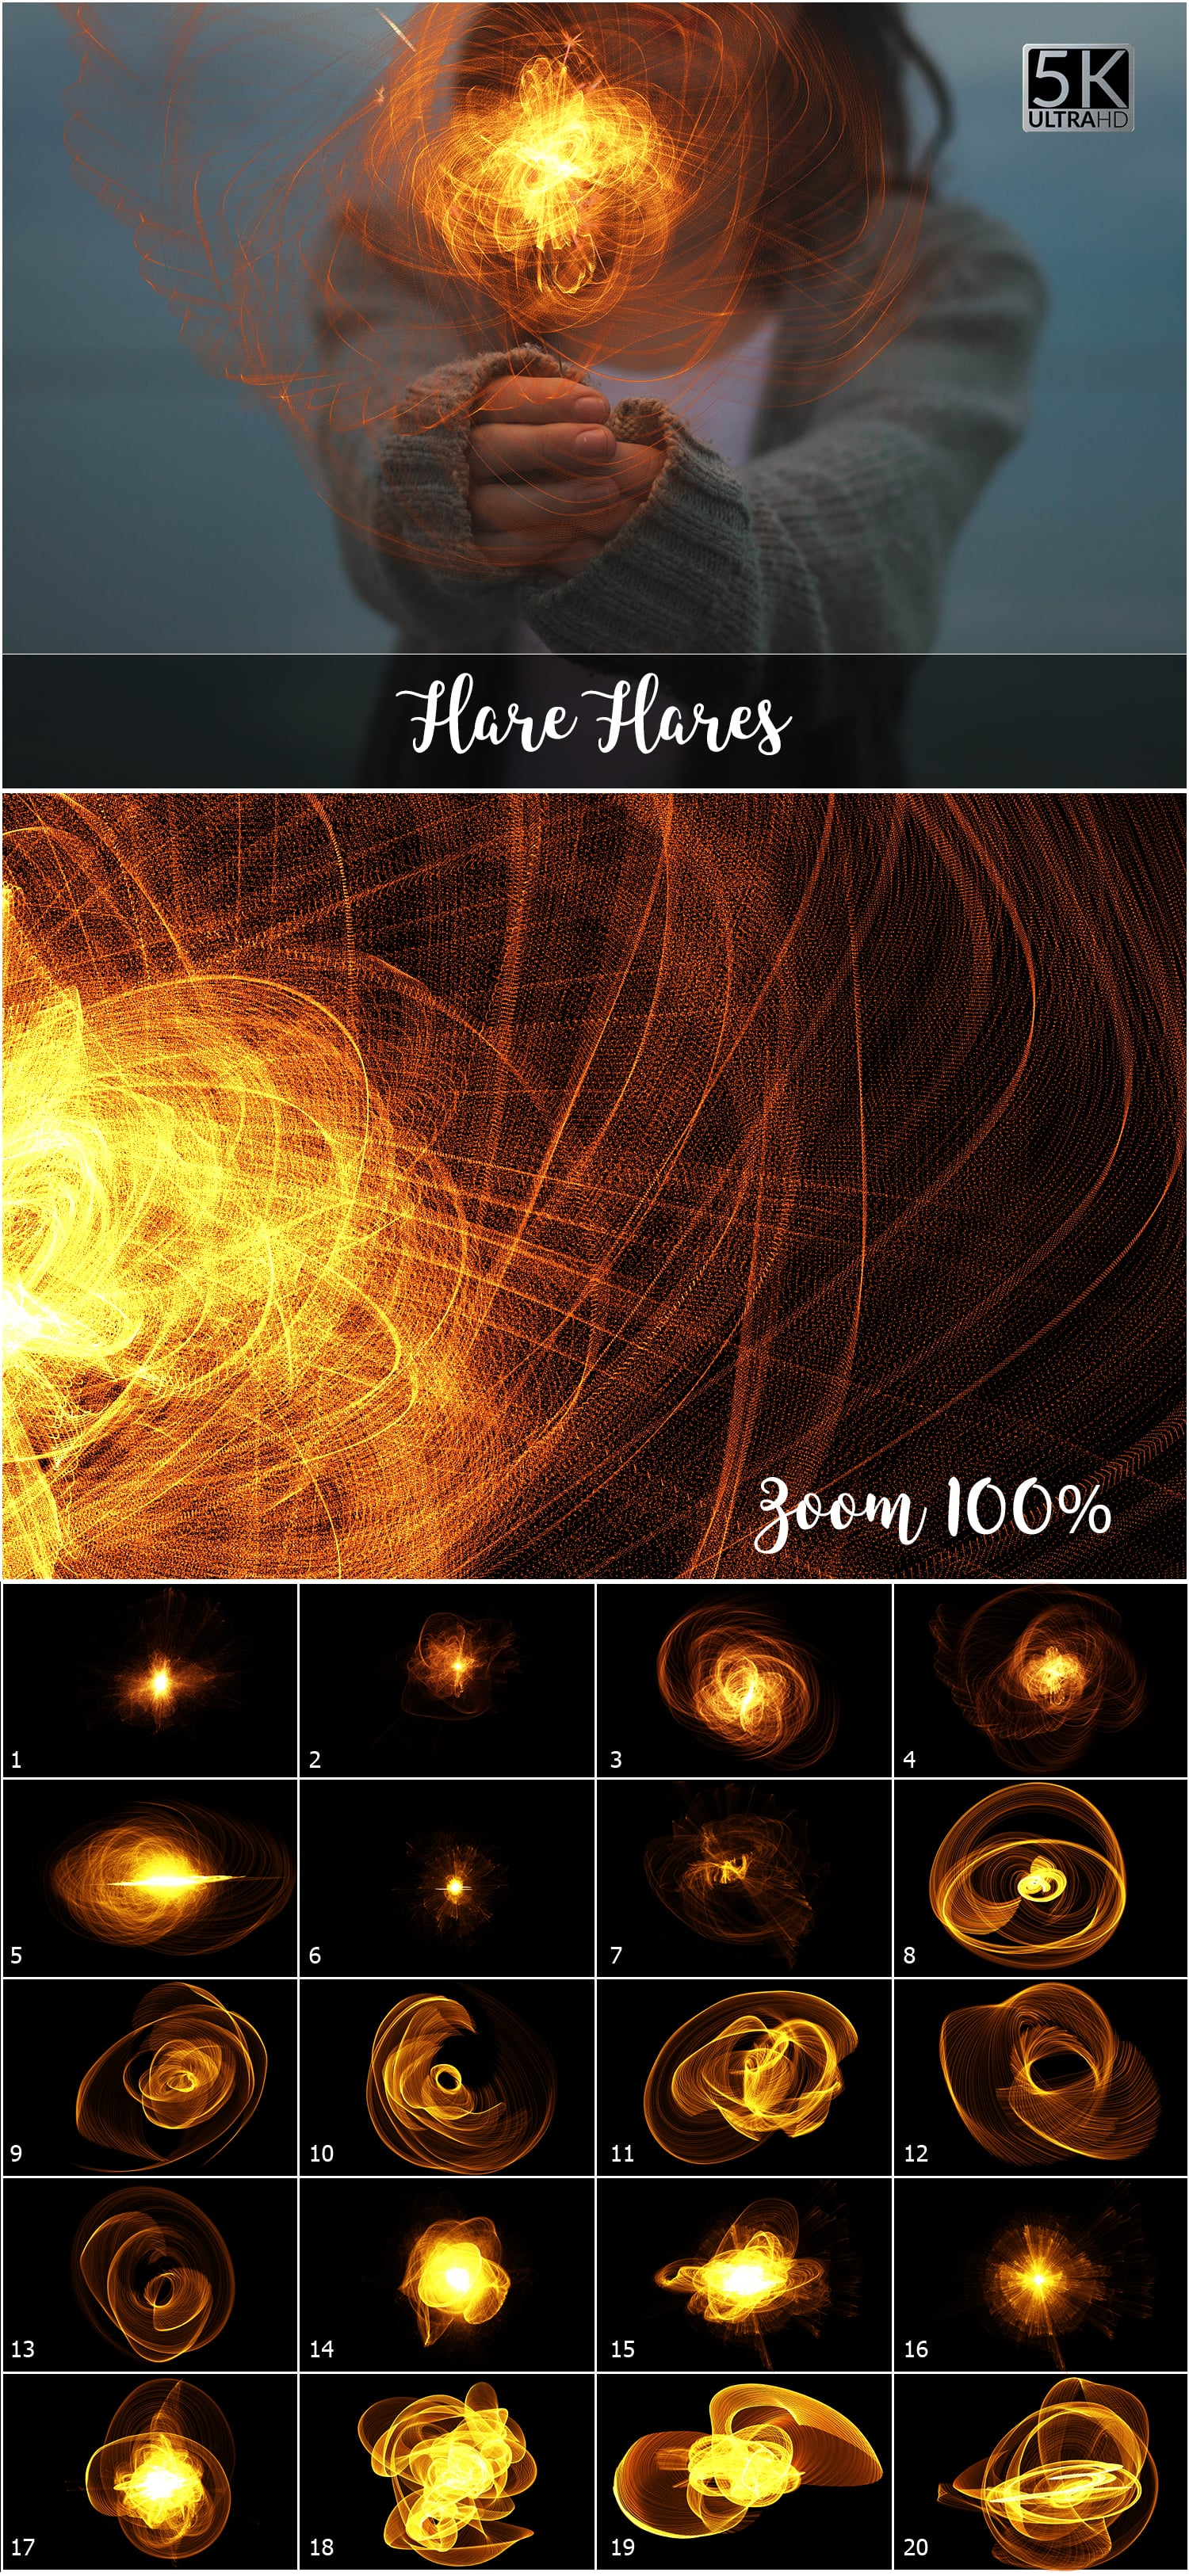 1053 Spectacular Overlays png - Only $18! - 9 Flare Flares